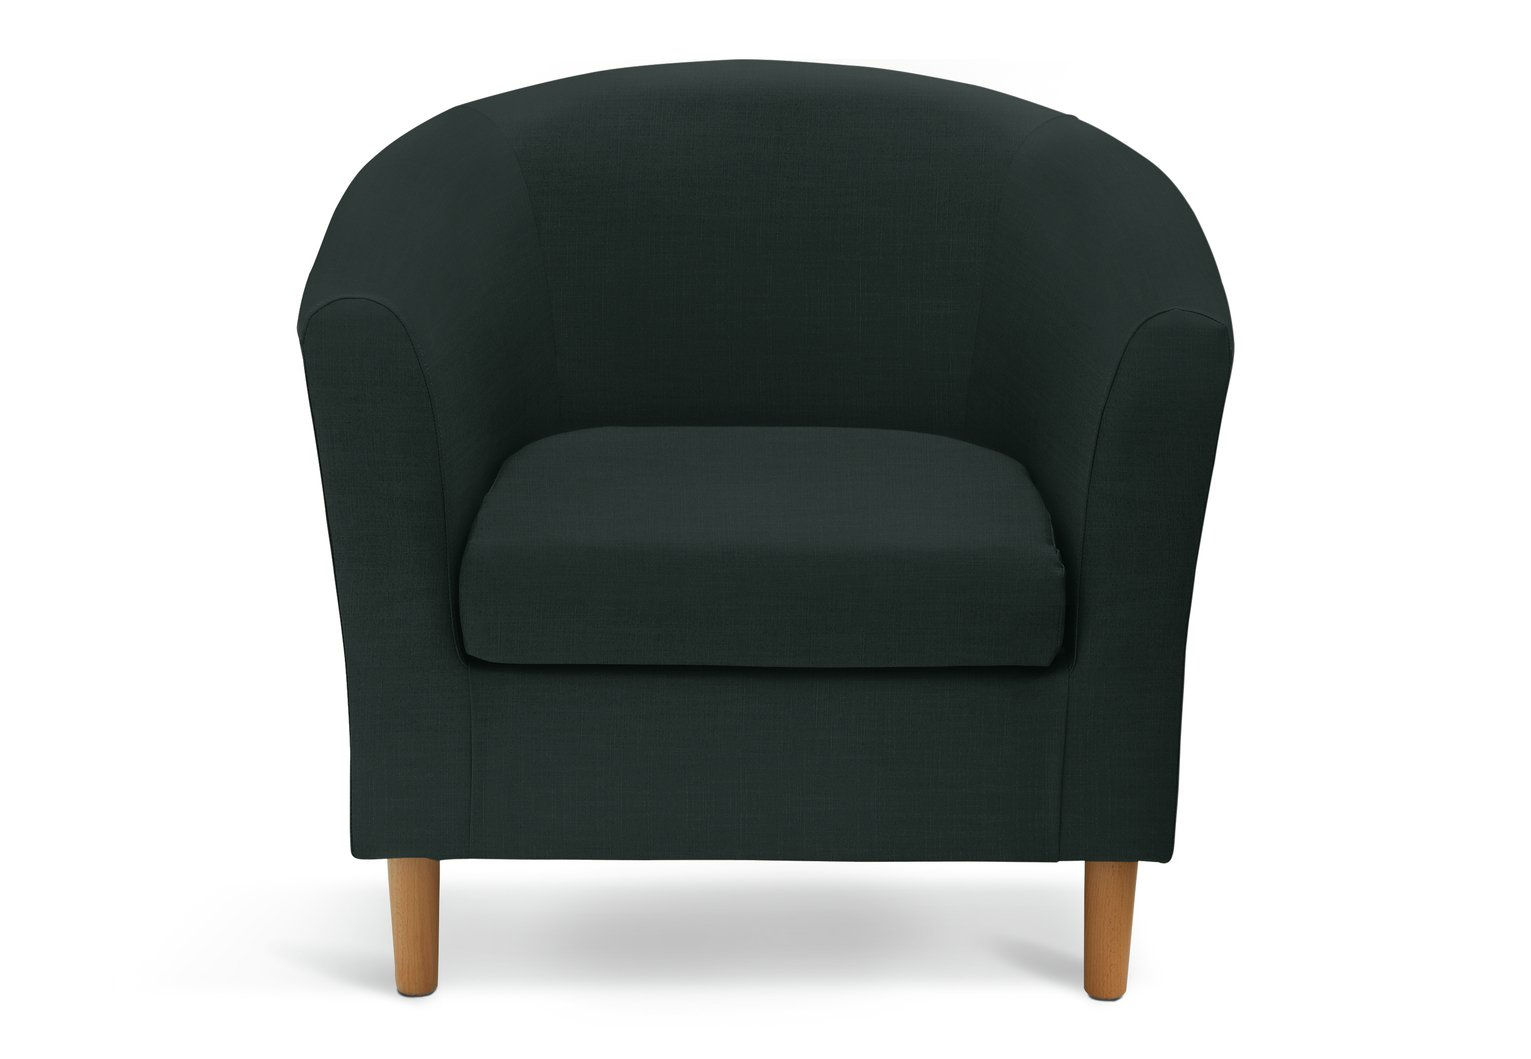 Argos Home Fabric Tub Chair - Black